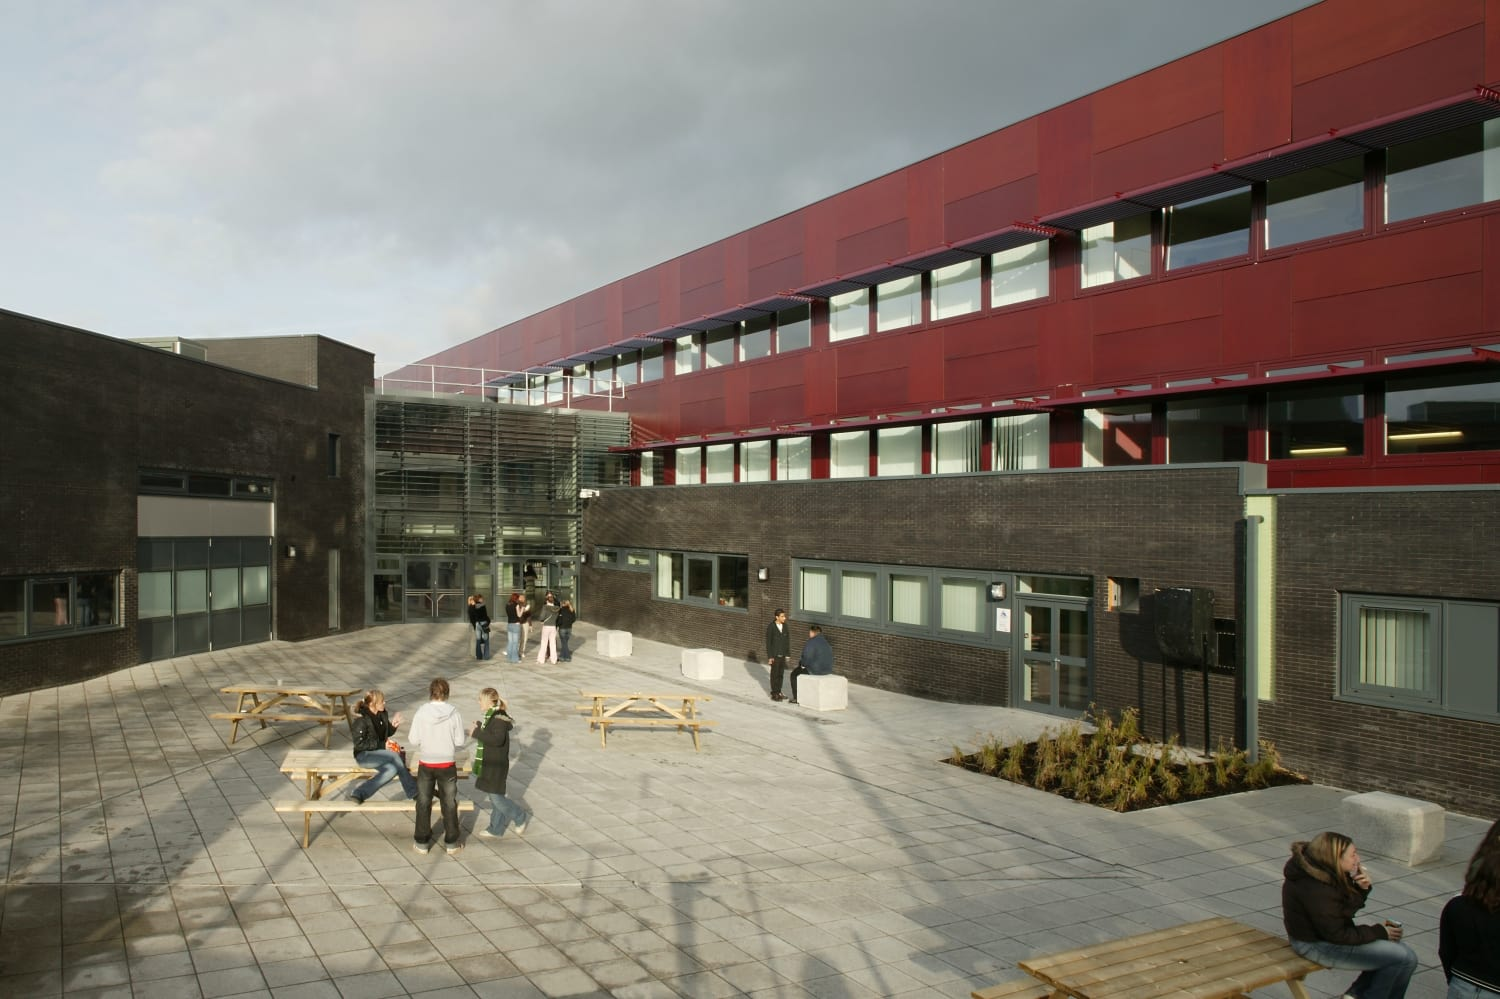 Longley Park Sixth Form College, Sheffield